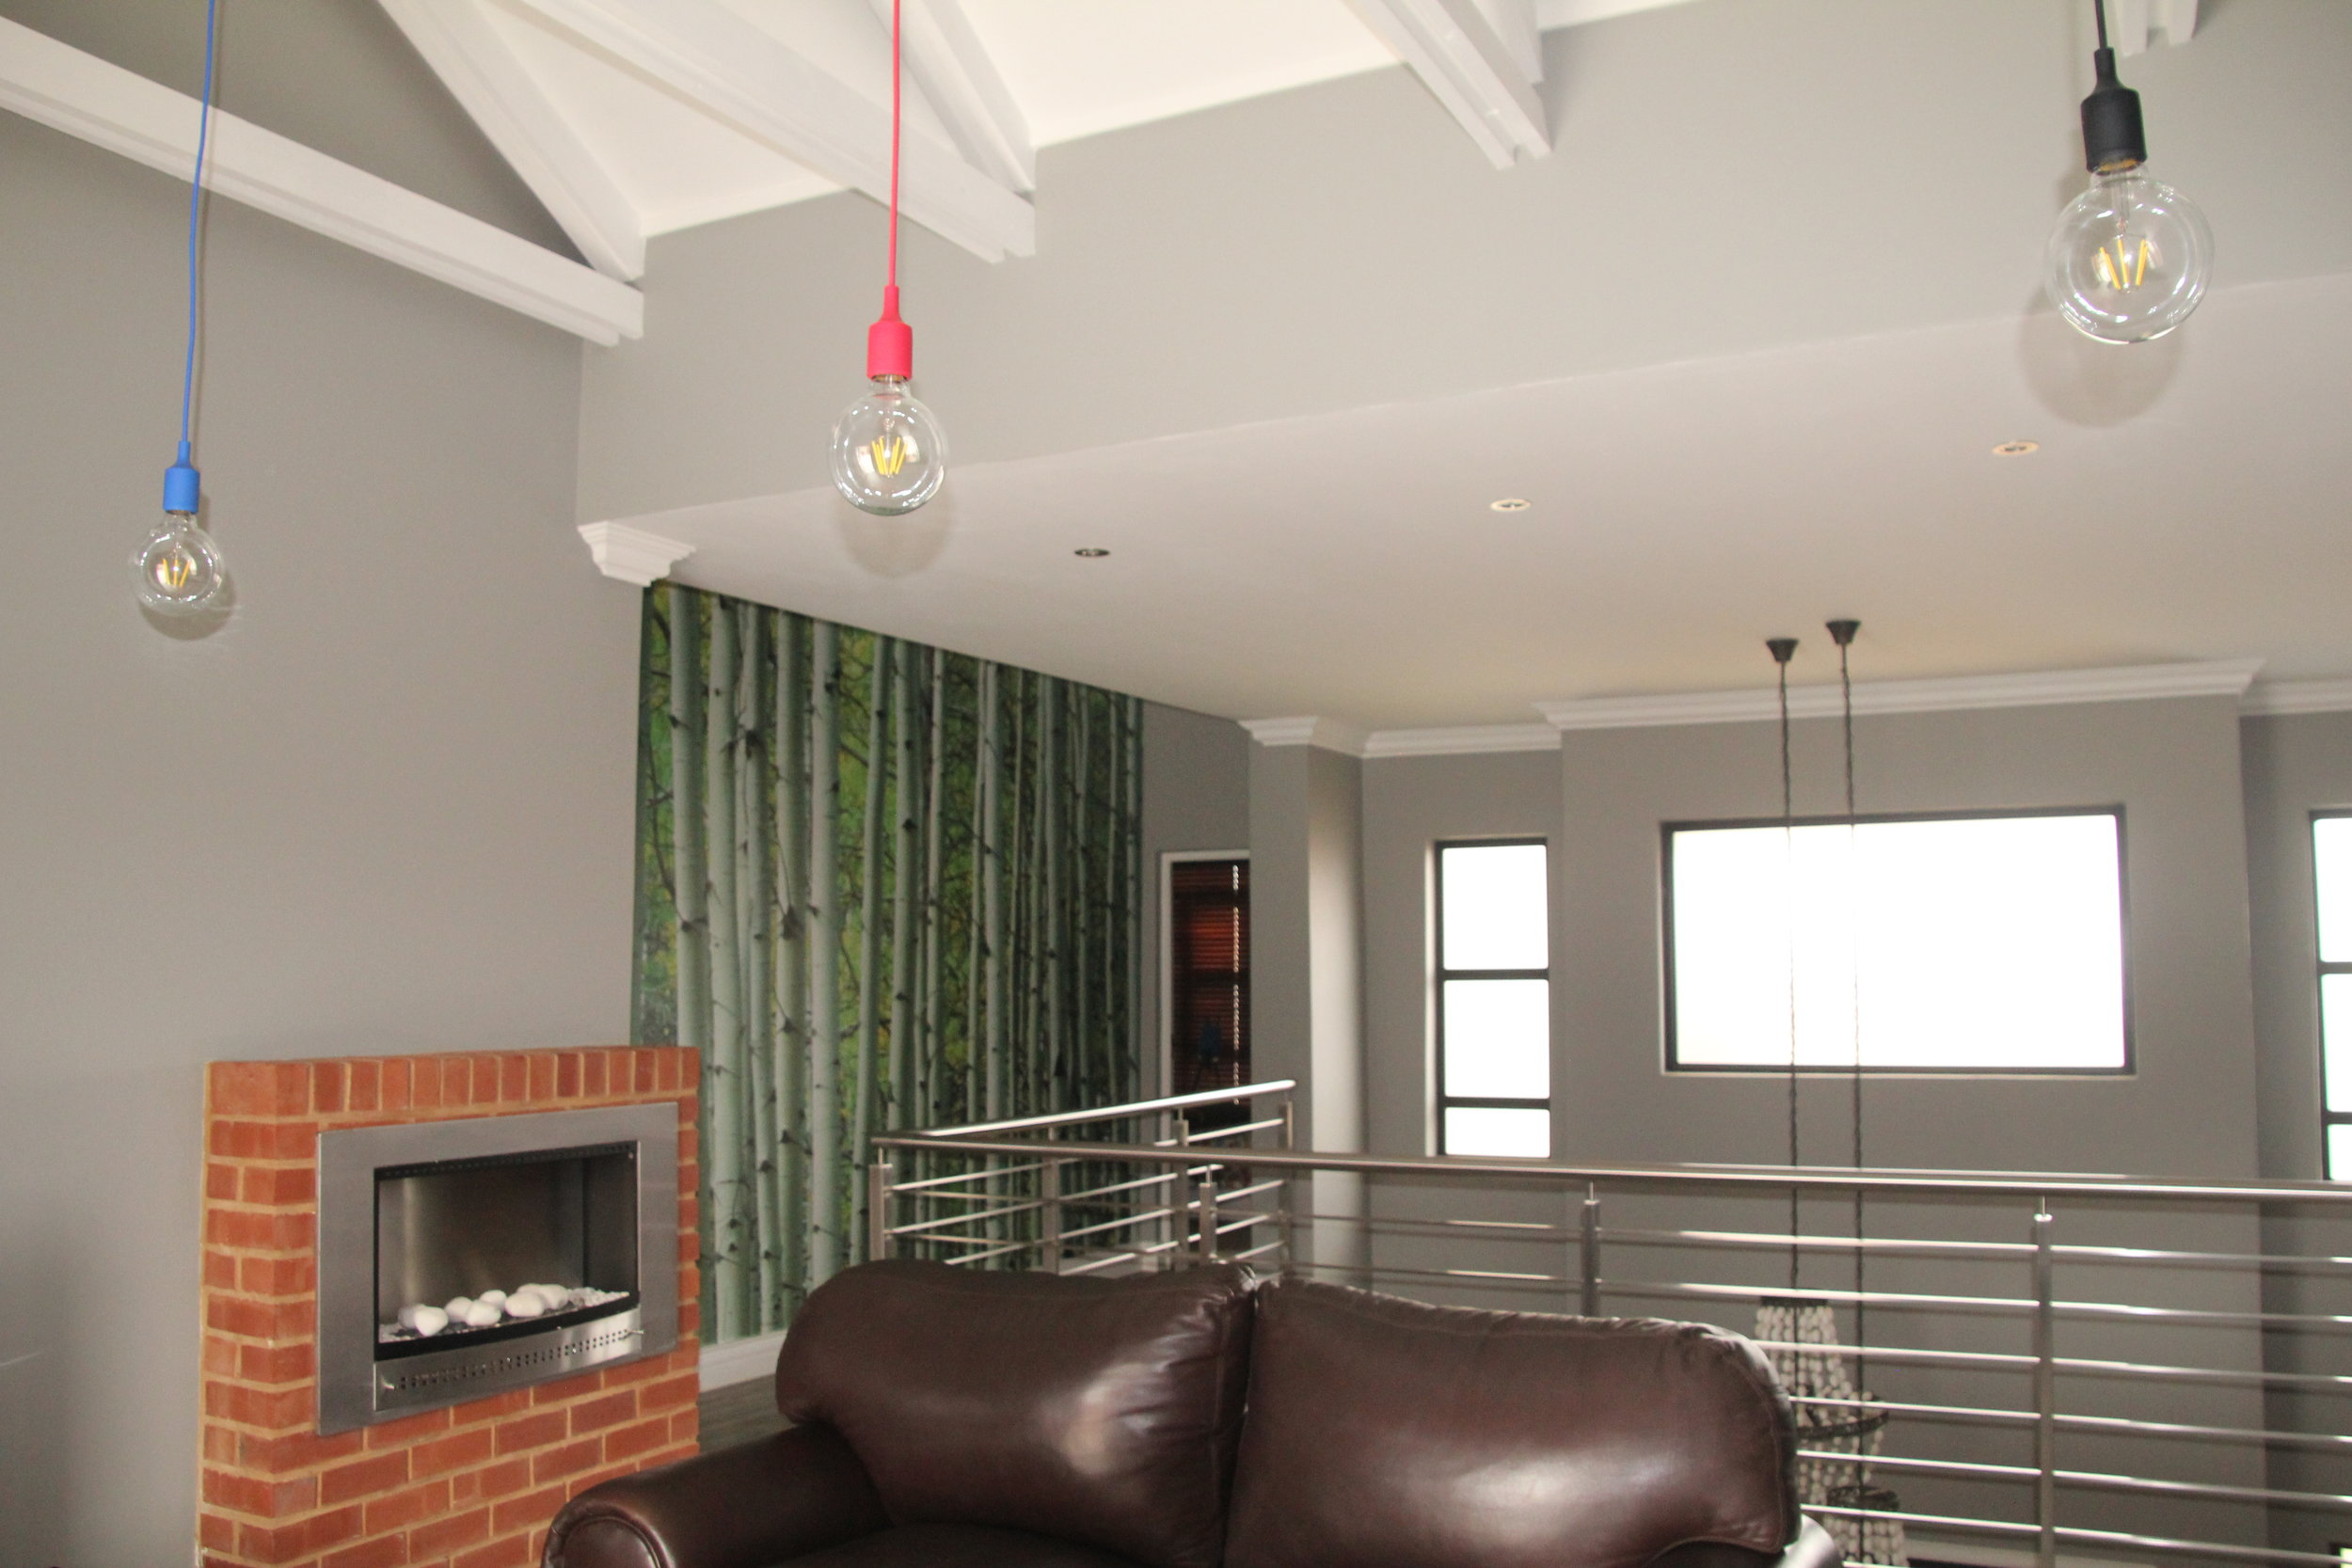 5 Pajama Lounge with fireplace and forest wallpaper.JPG